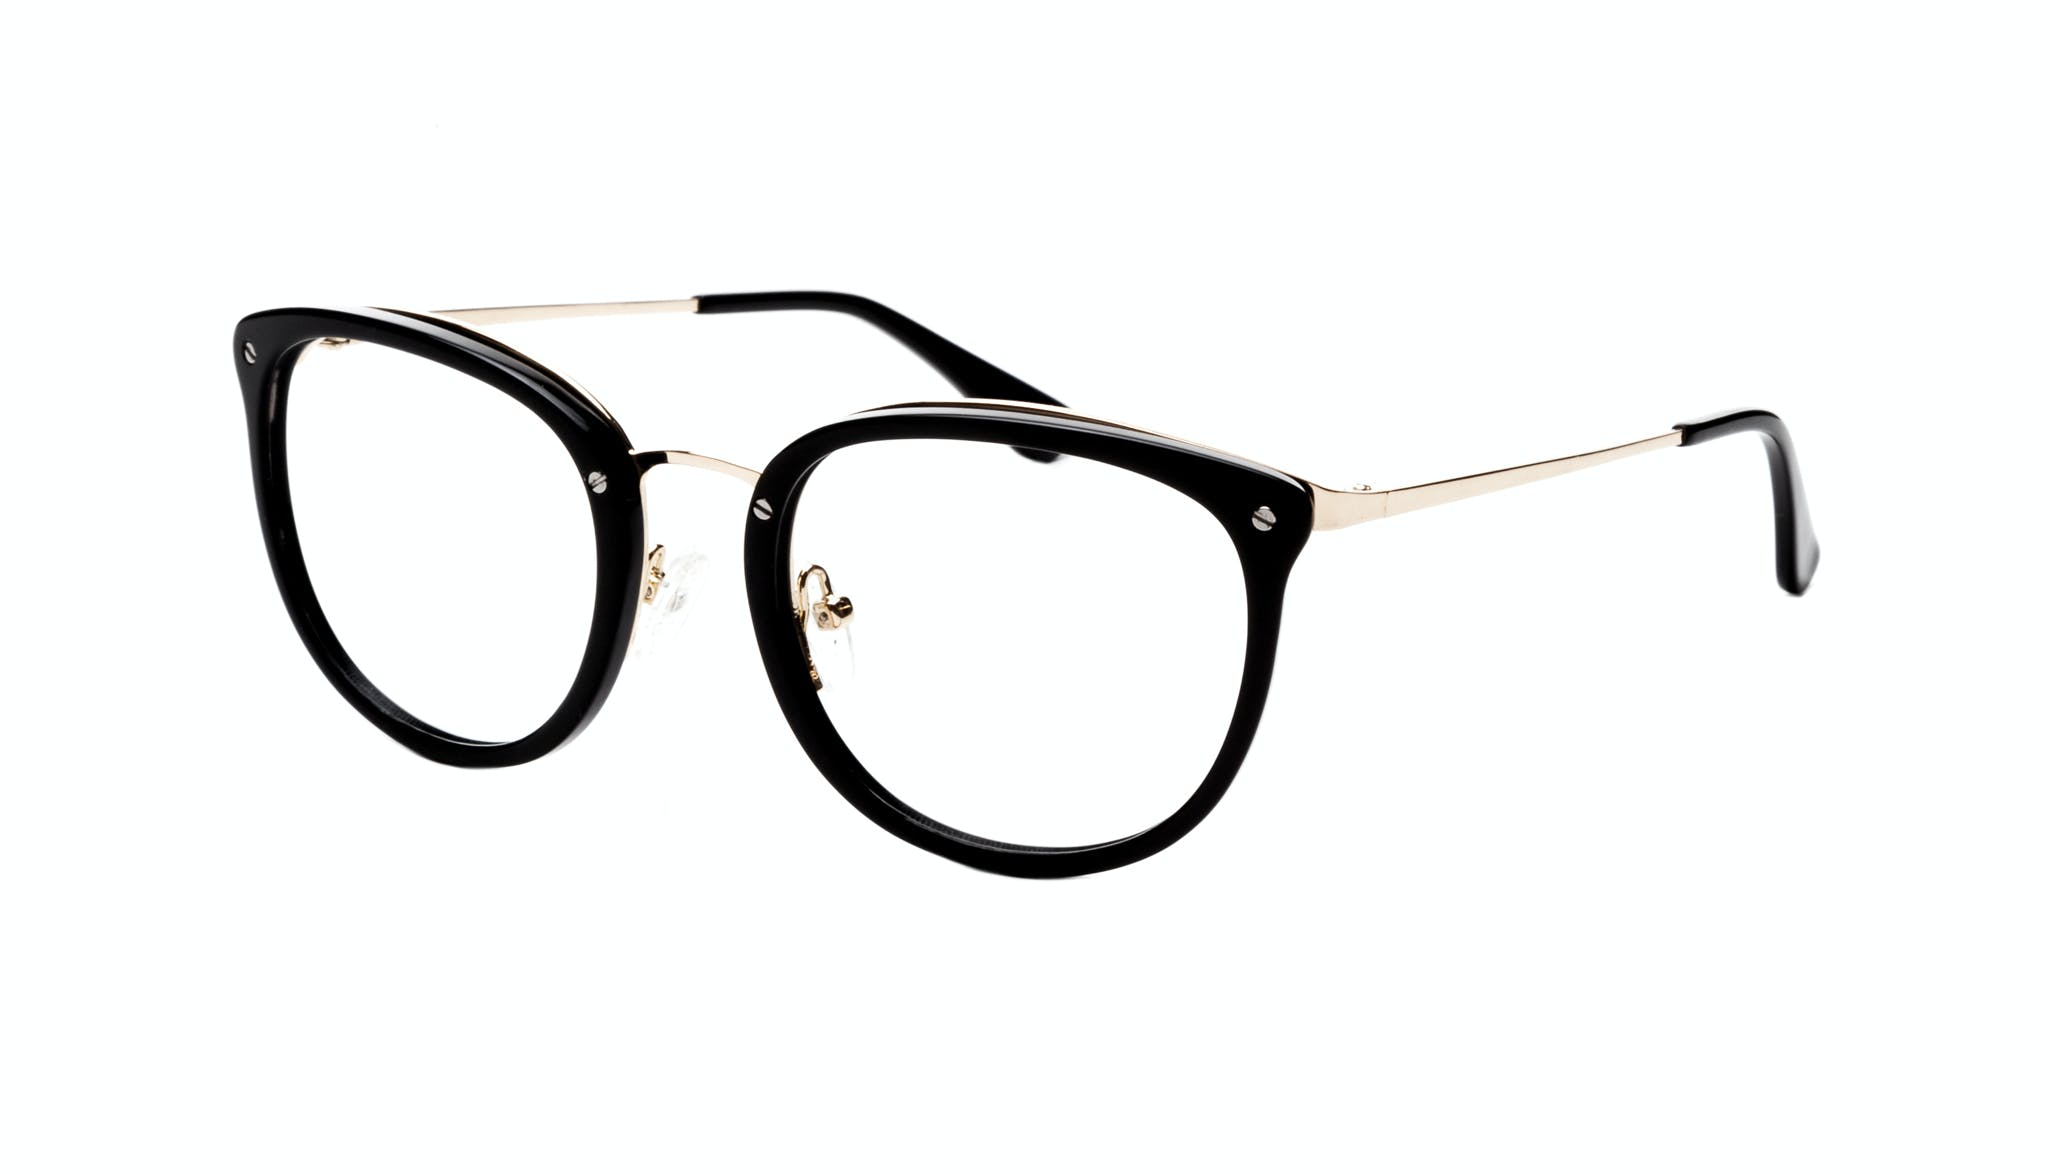 Affordable Fashion Glasses Square Round Eyeglasses Women Amaze Onyx Tilt